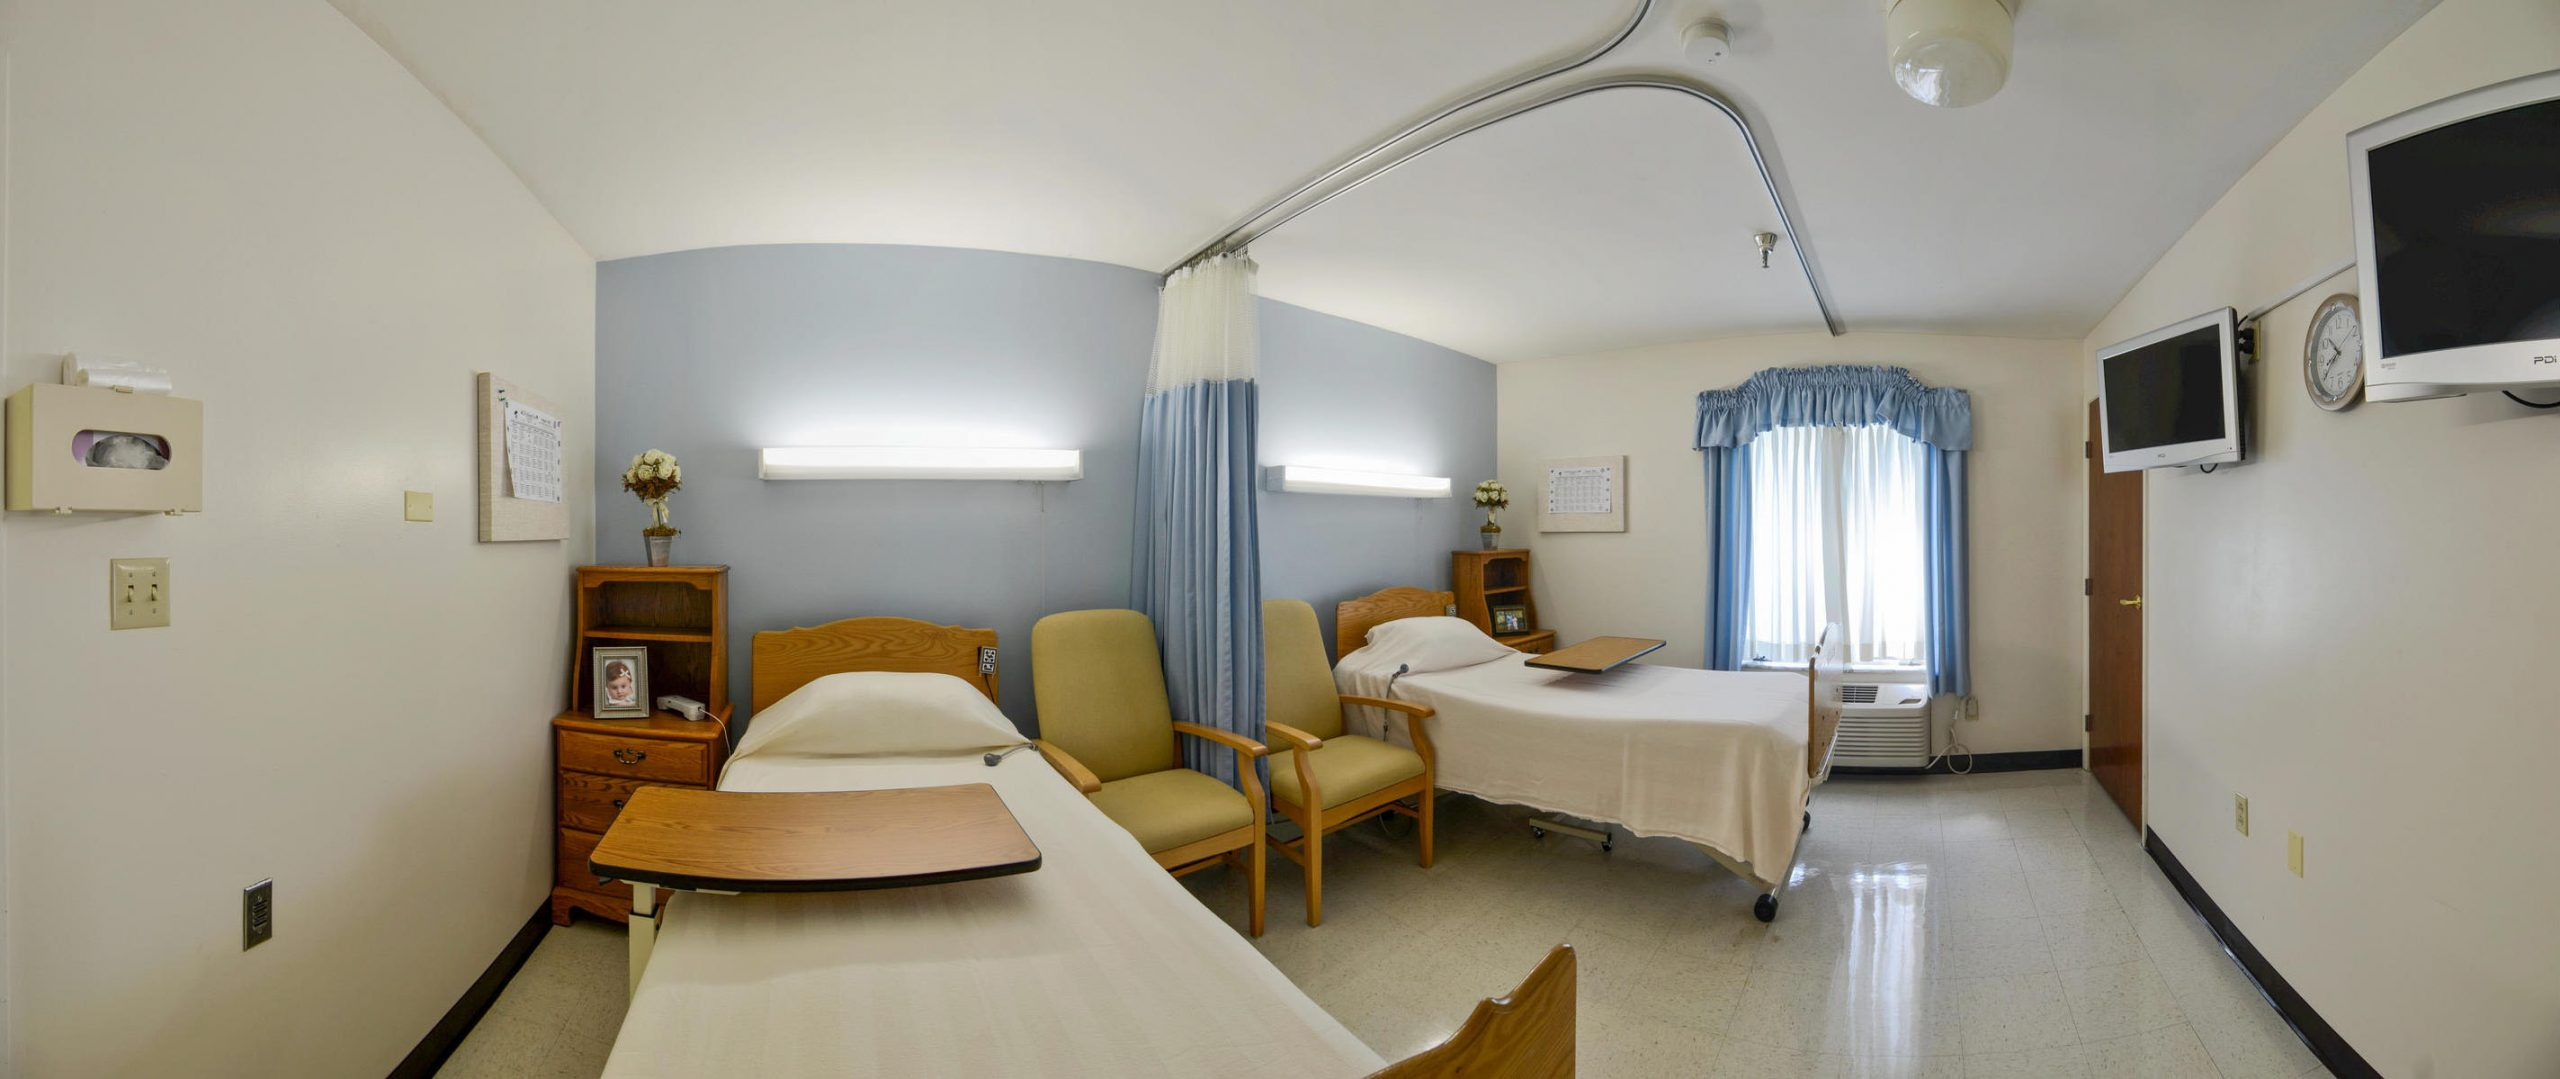 Panoramic view of Stonerise Clarksburg patient room with two beds and open curtain